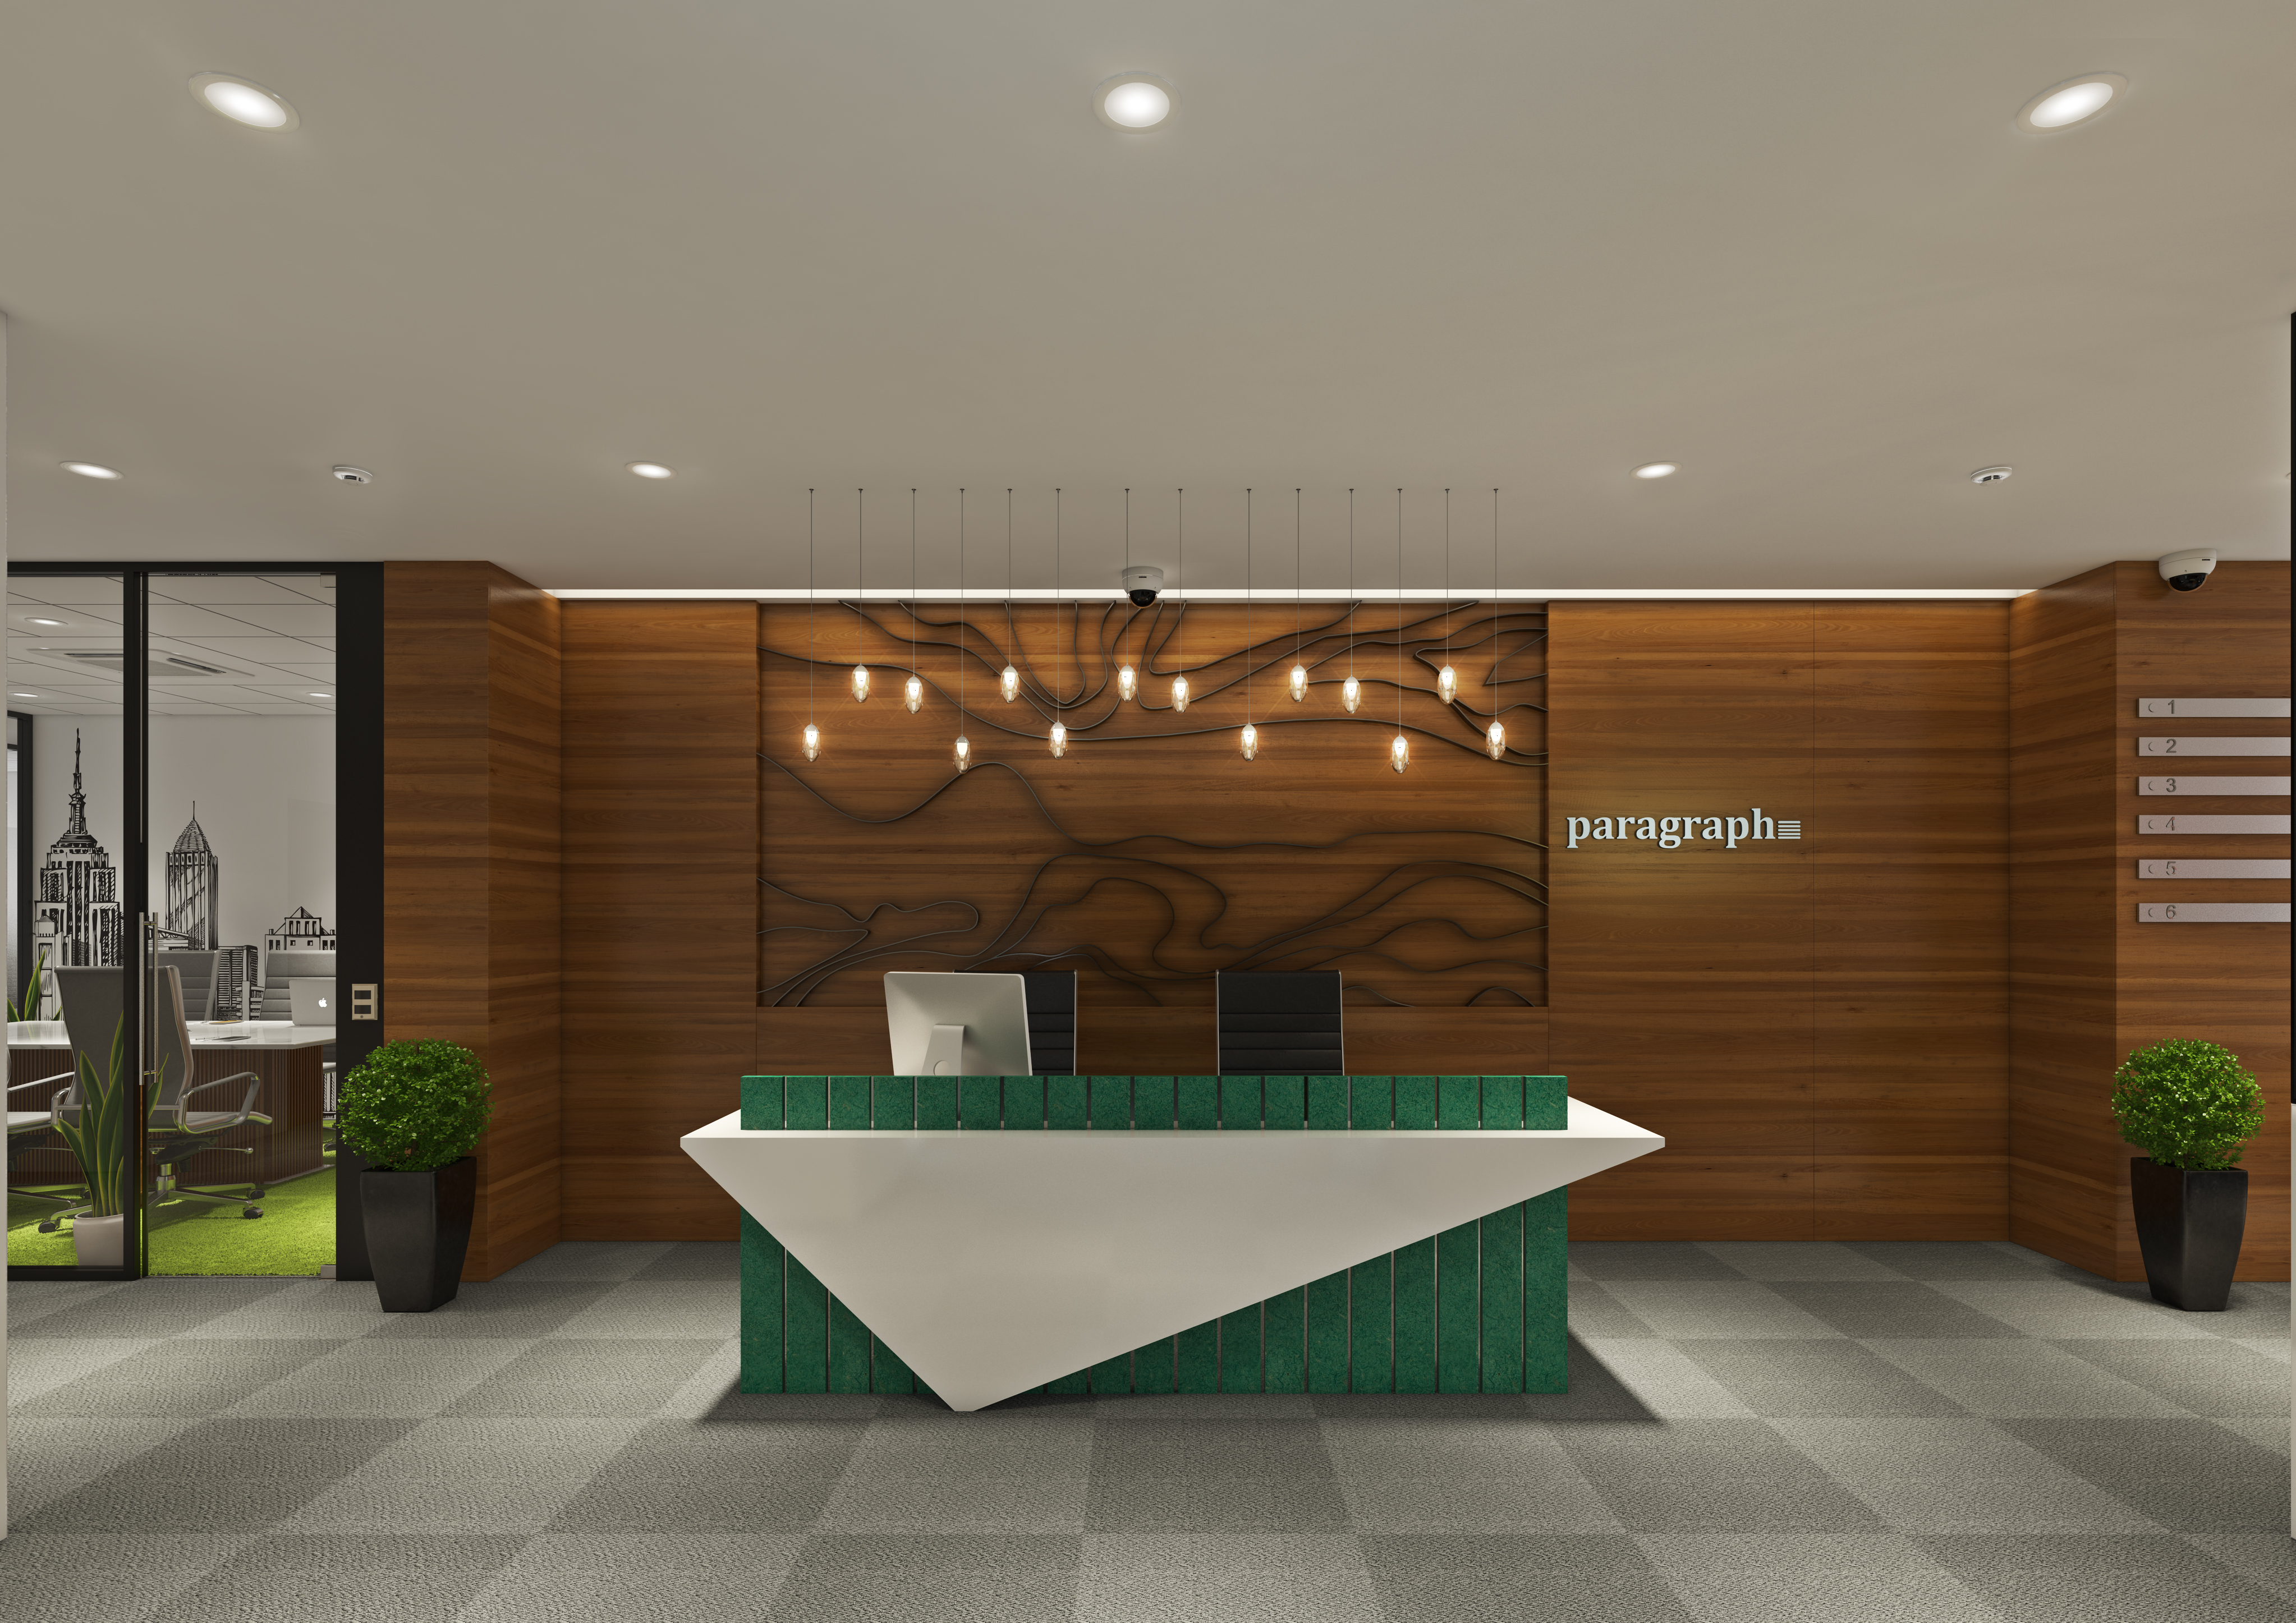 Paragraph Coworking Office Space Ahmedabad